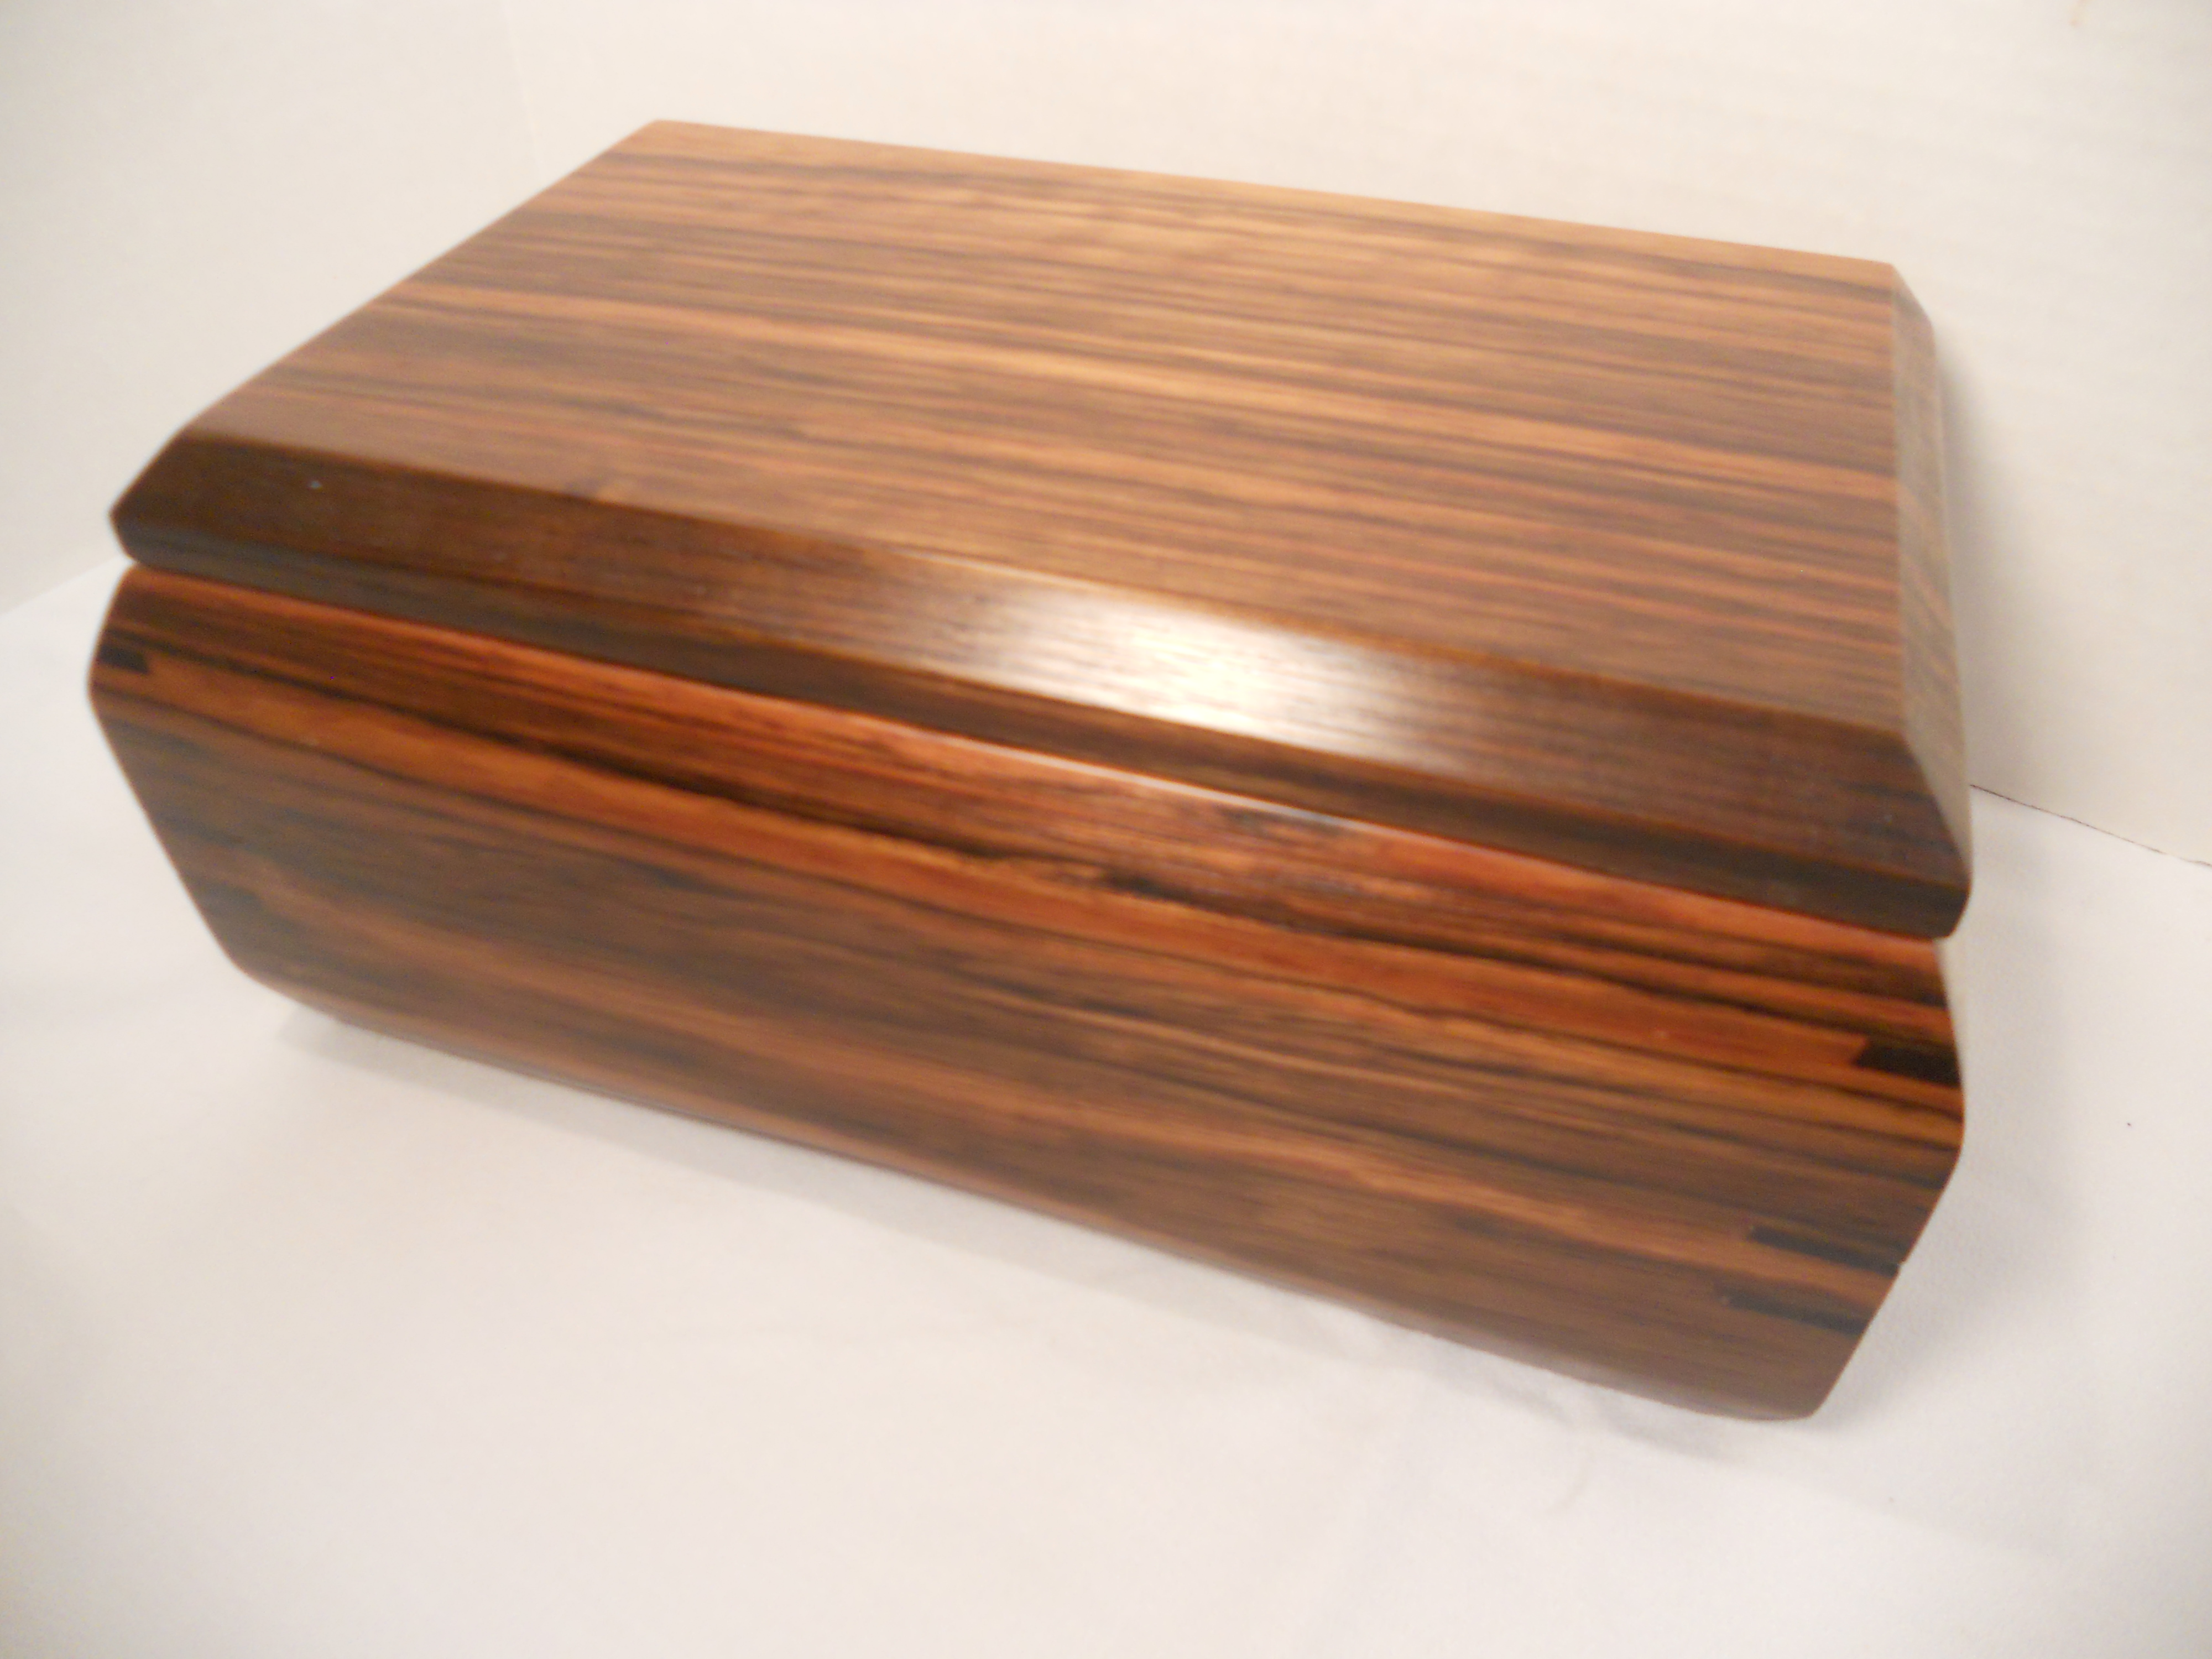 Signature Sculpted Box, Small